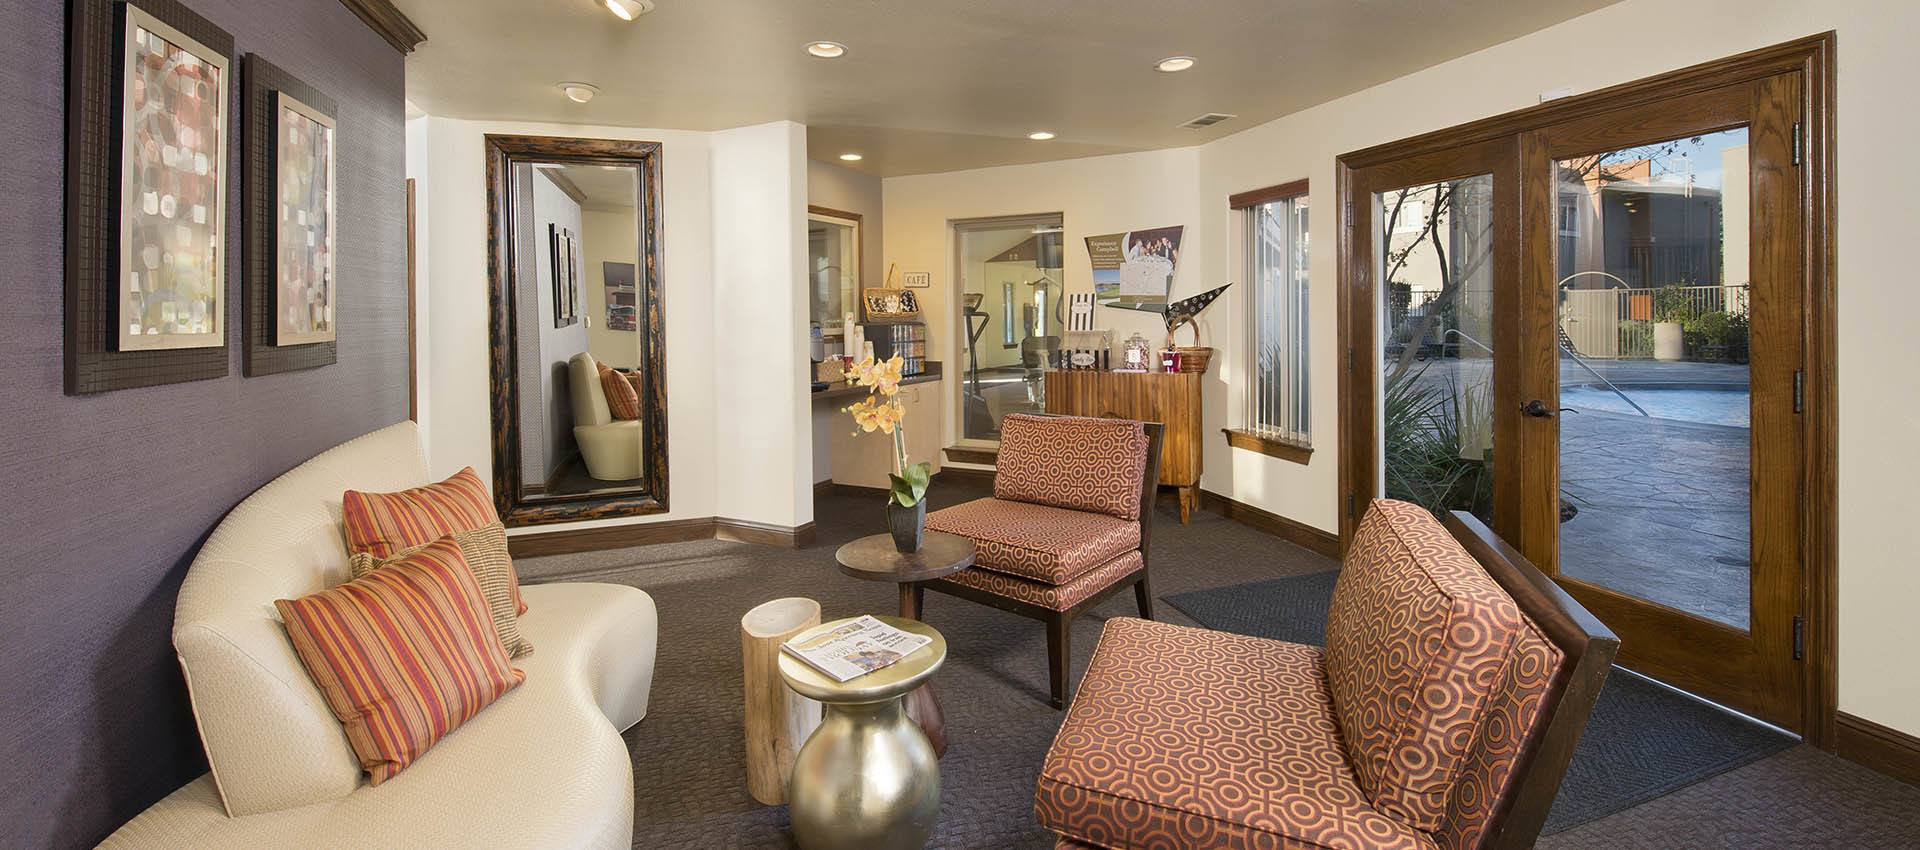 Community Lounge at La Valencia Apartment Homes in Campbell